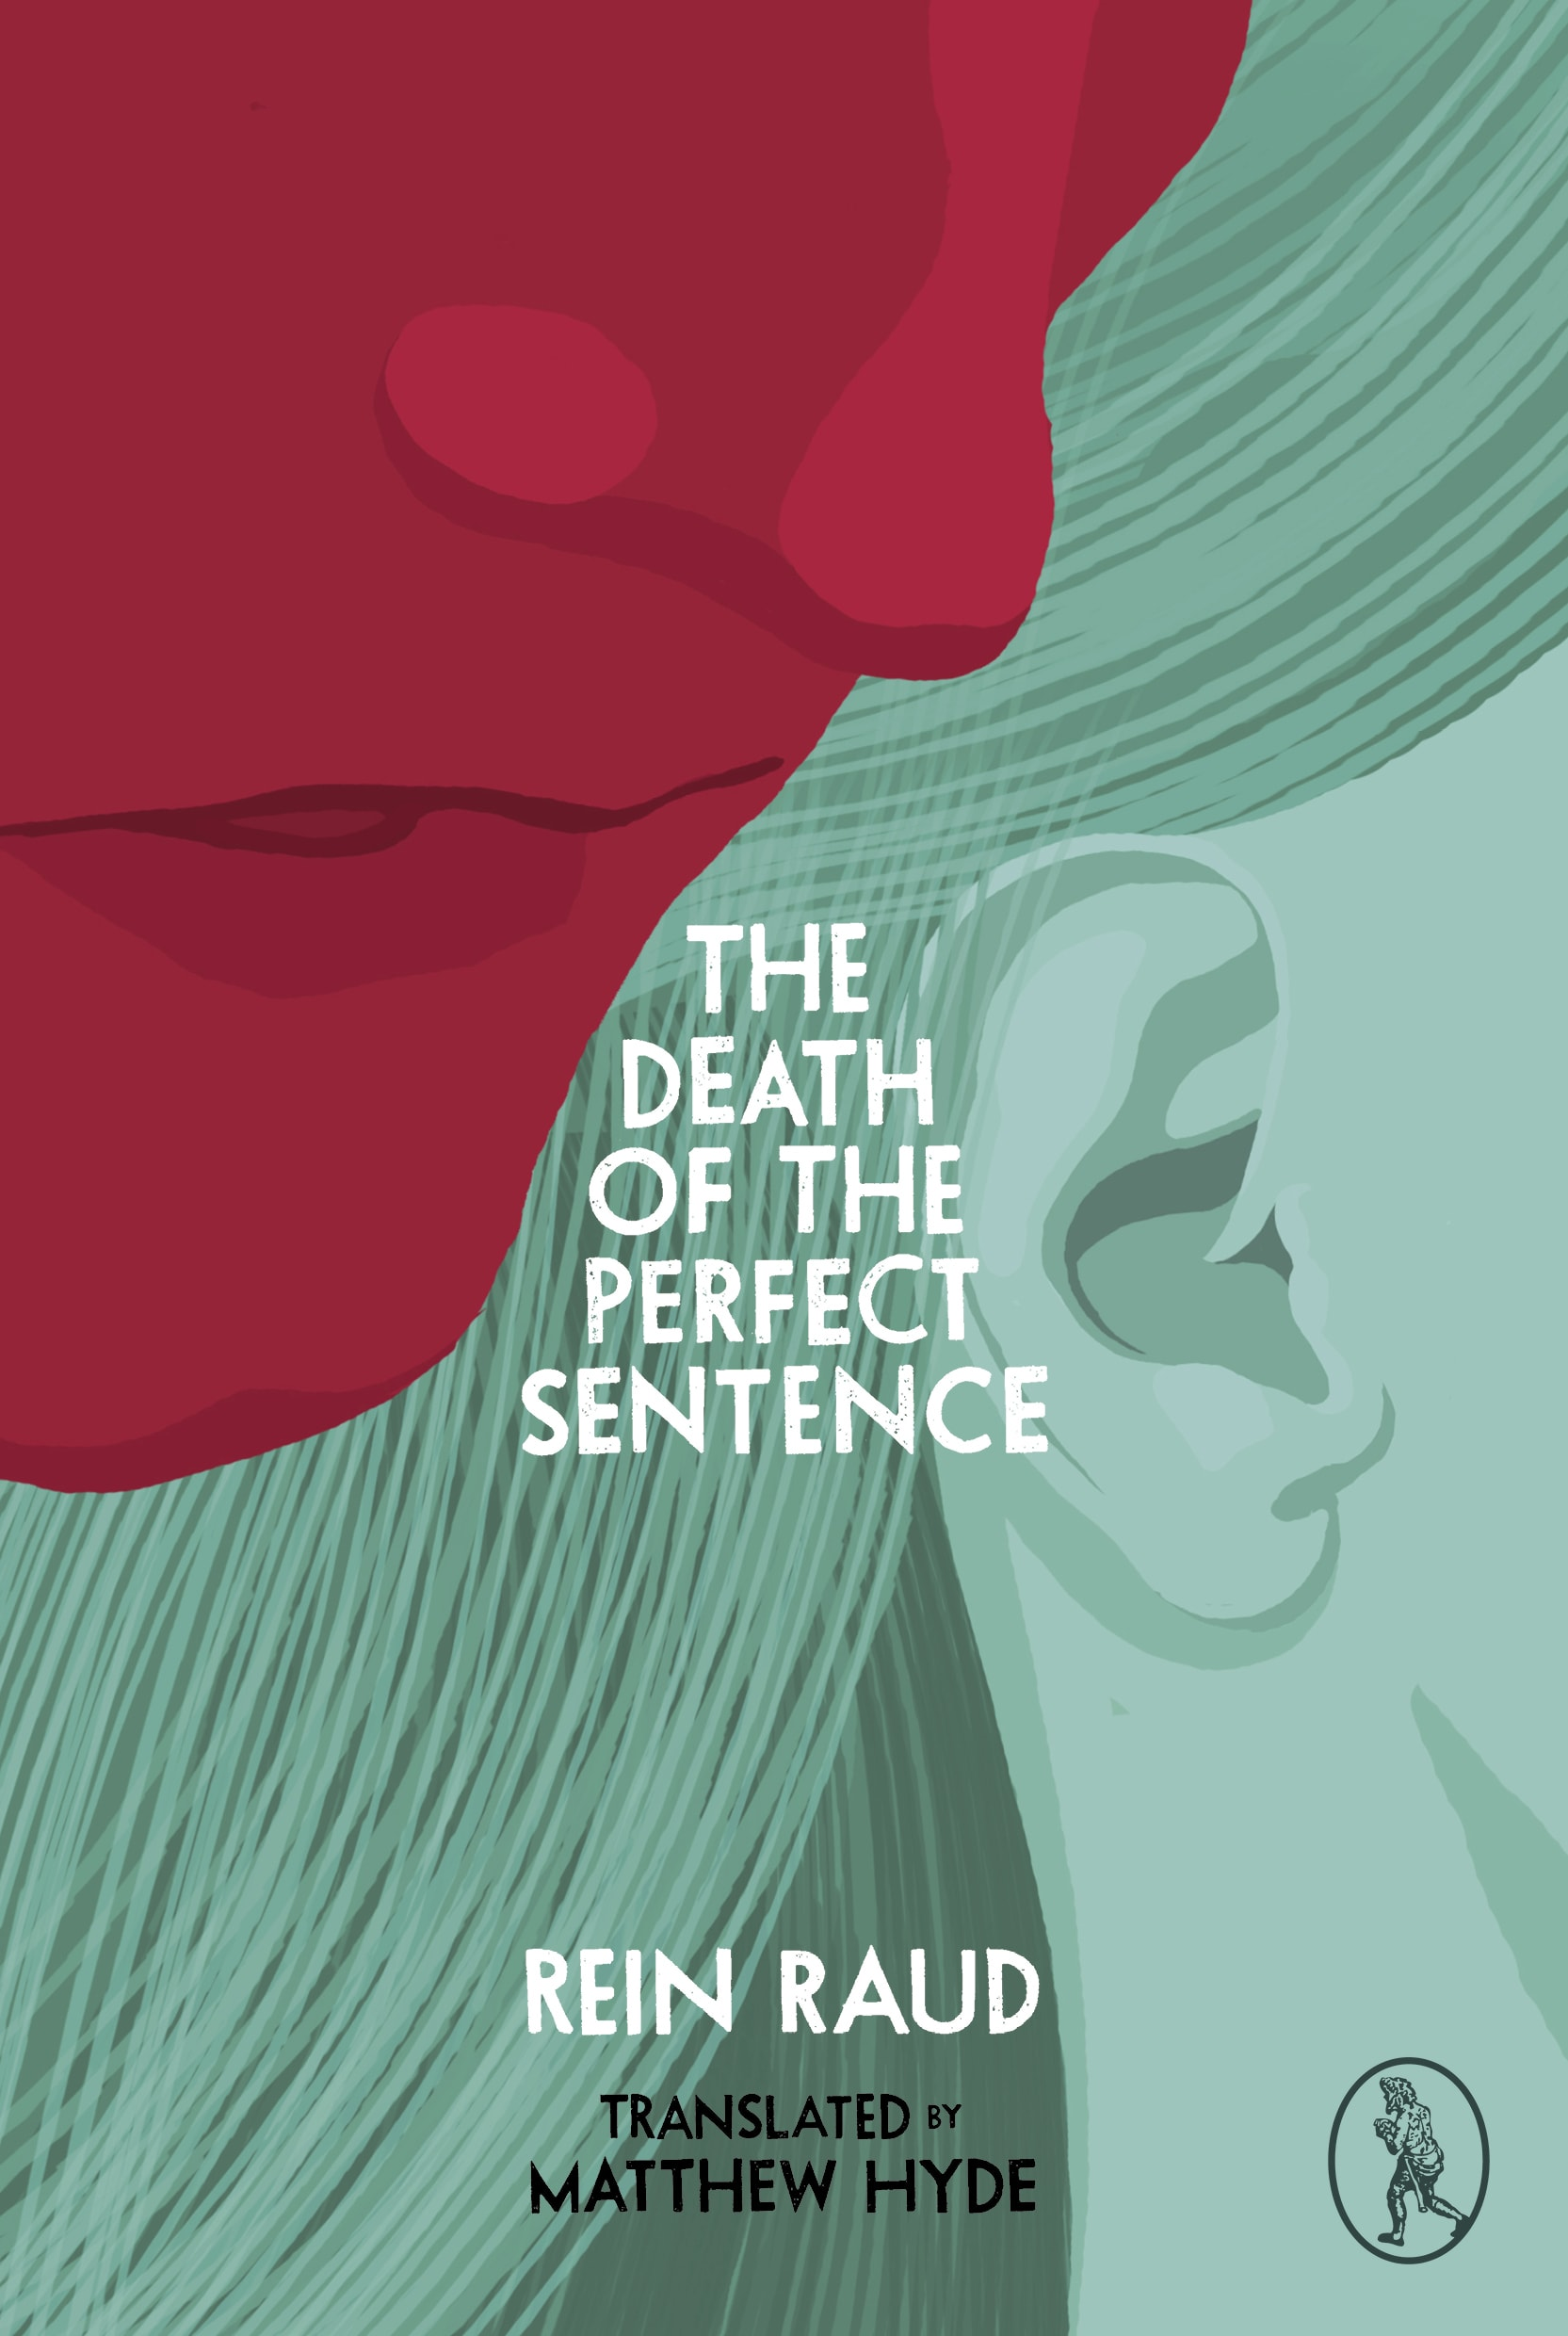 The Death of the Perfect Sentence